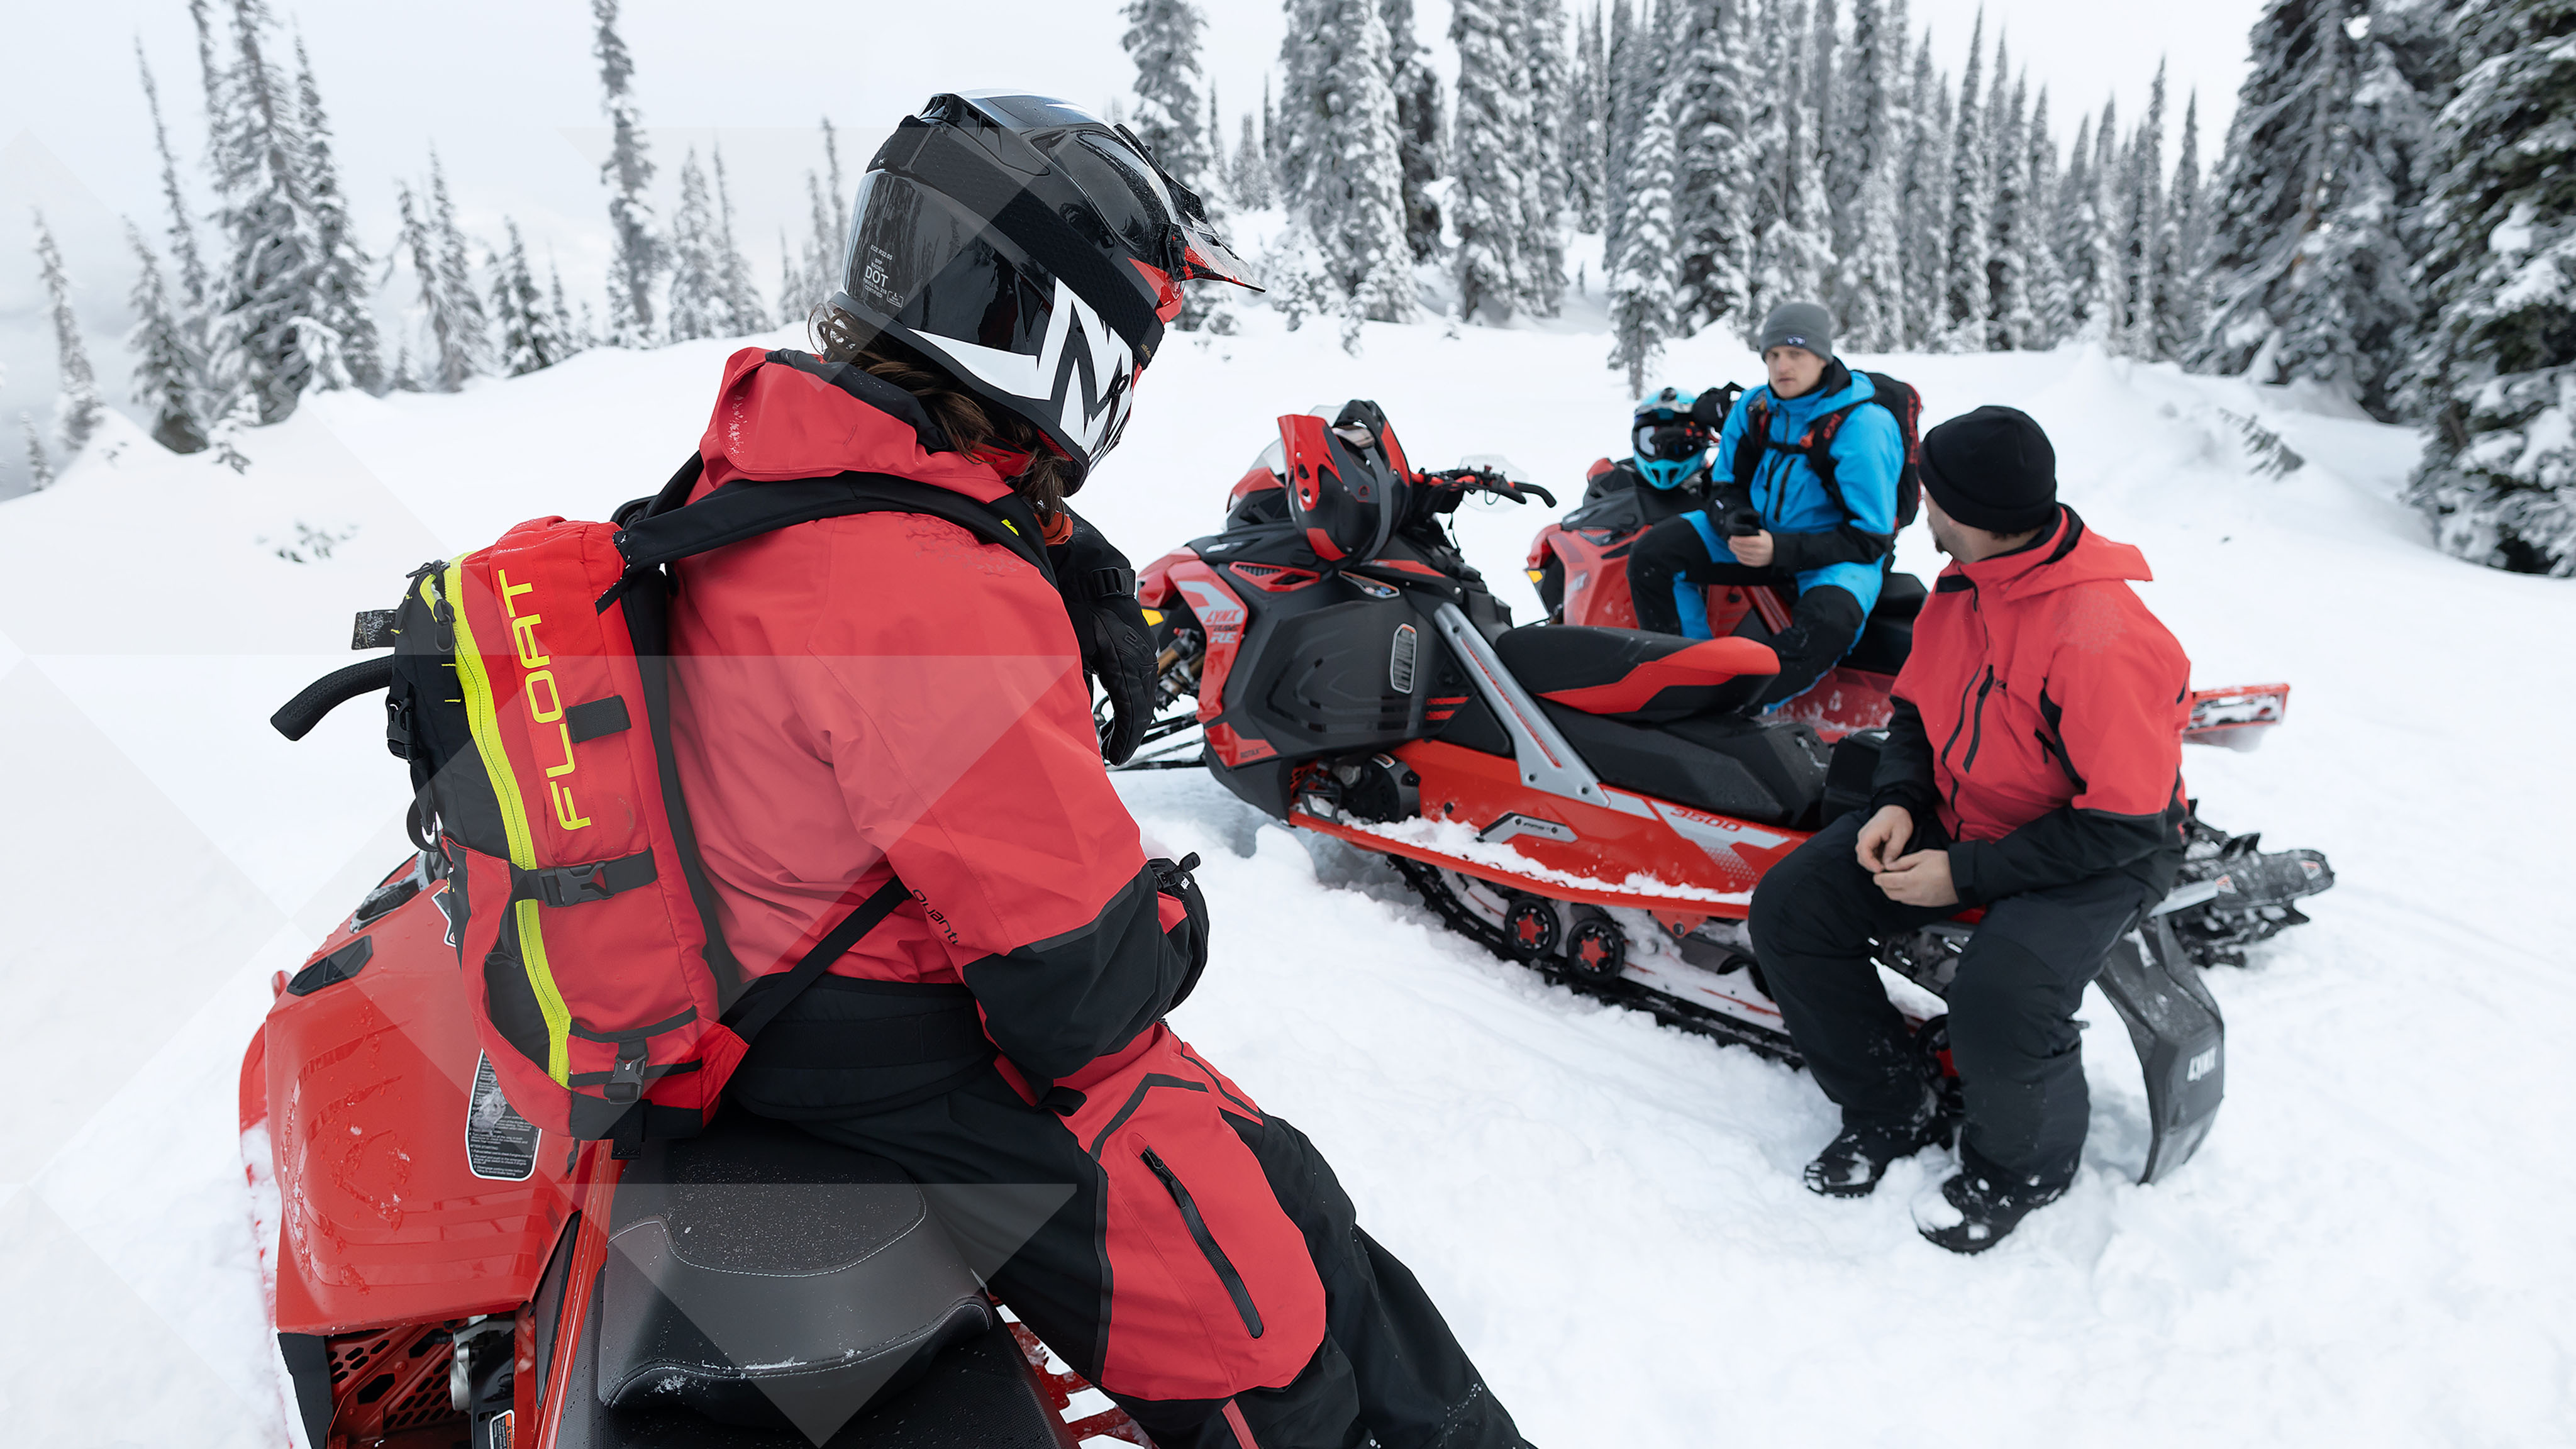 3 Riders talking during a snowmobile backcountry ride